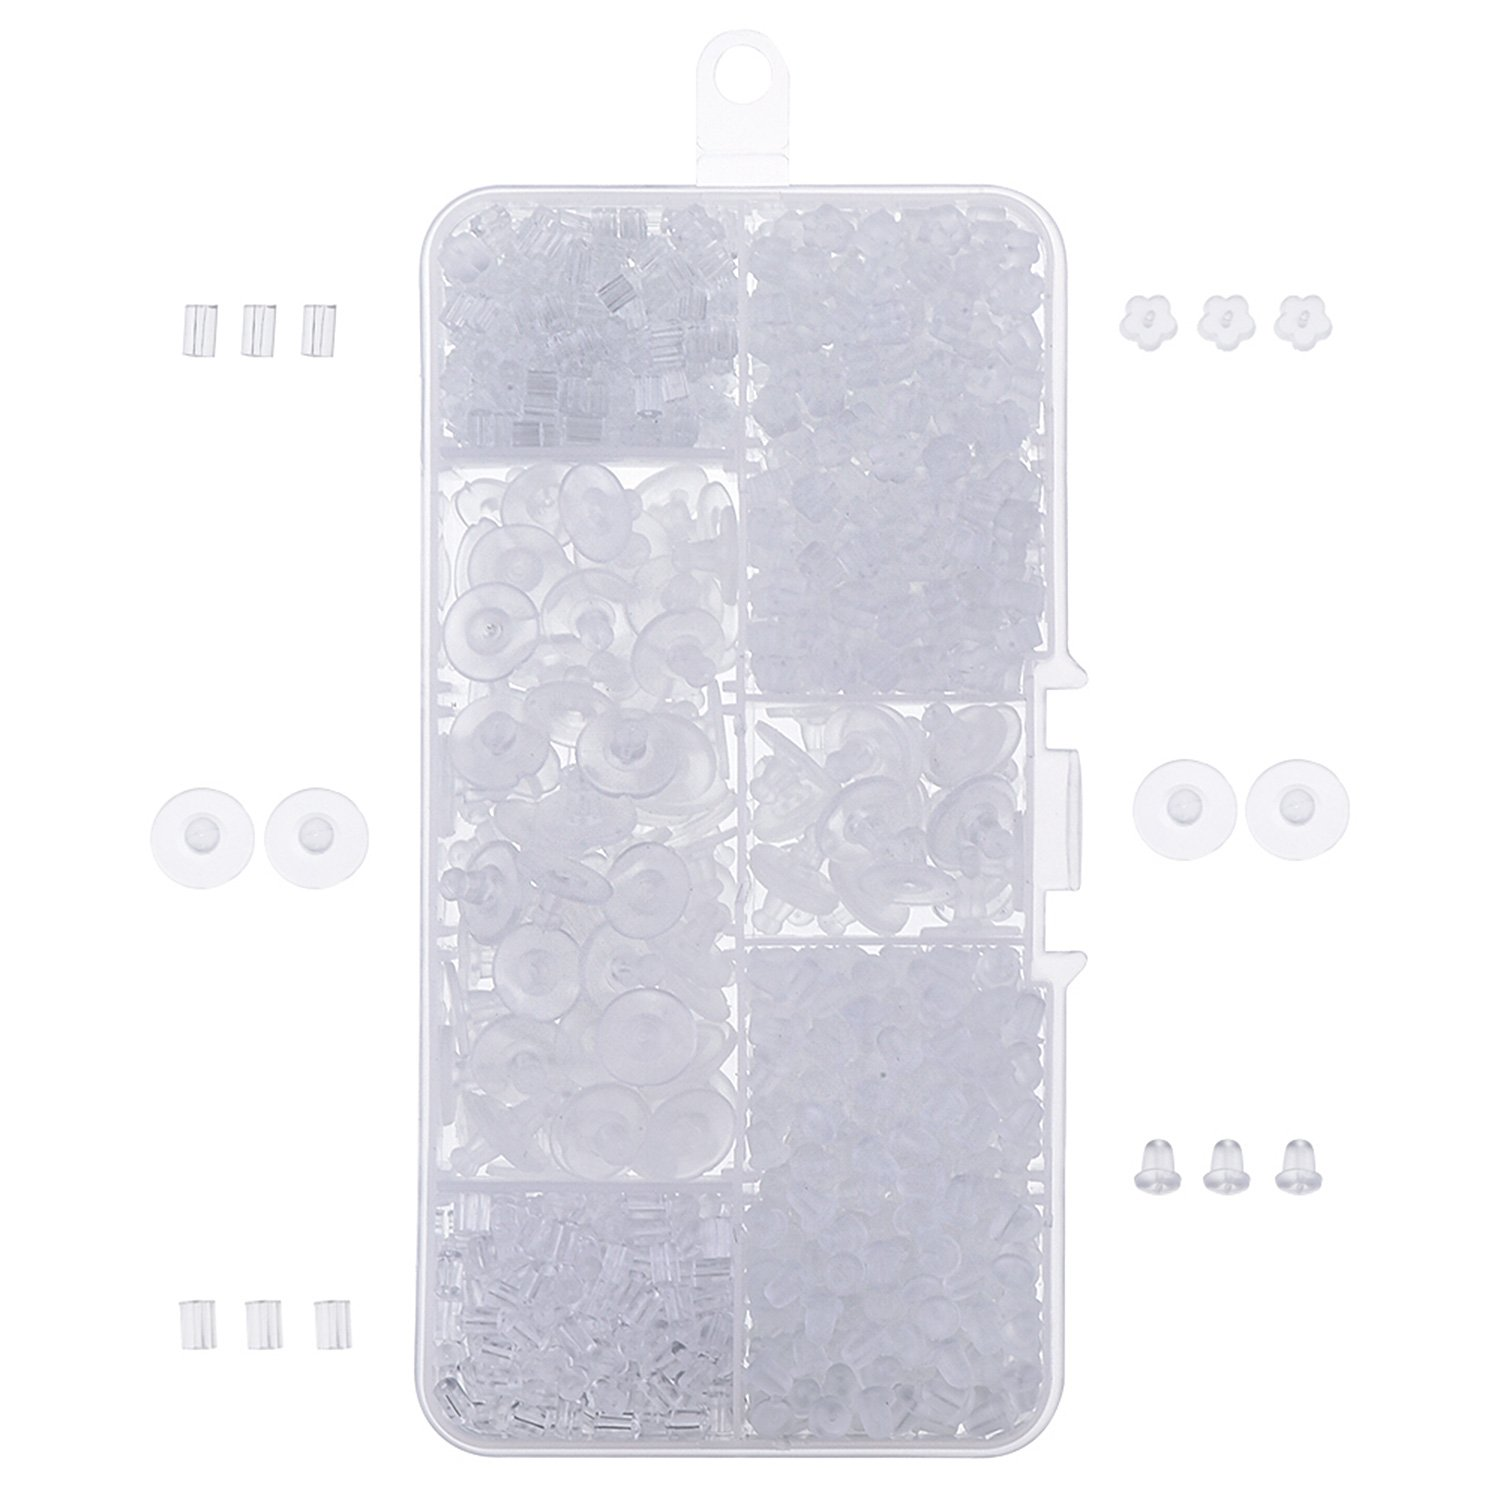 Outus 1000 Pieces Earring Backs Rubber Earring Safety Backs Stoppers, Clear